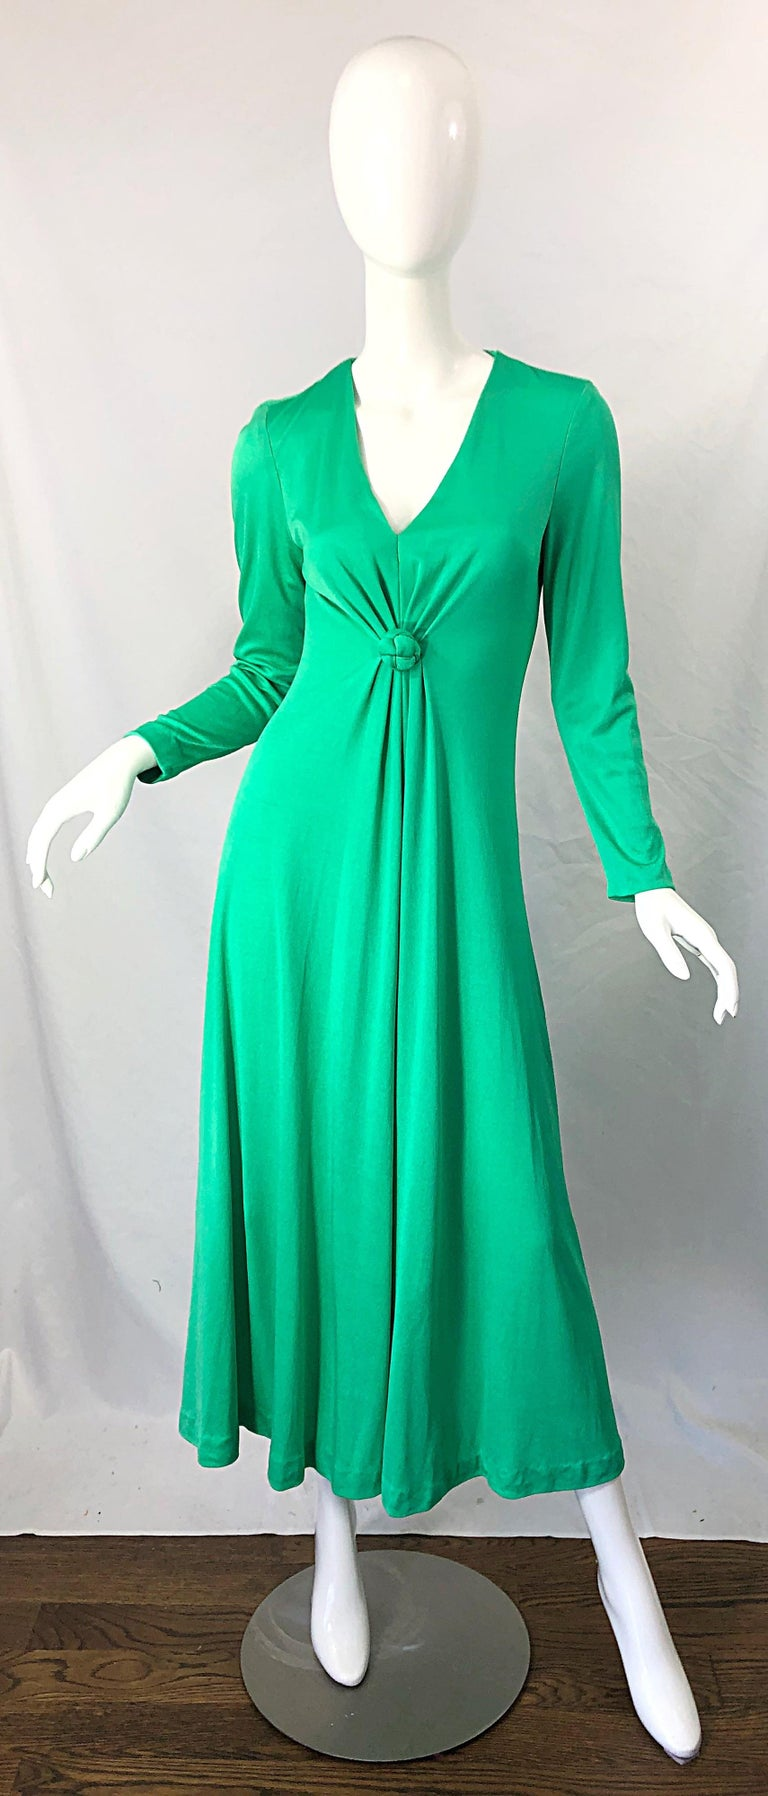 1970s Fredrick's of Hollywood Kelly Green Vintage Jersey 70s Maxi Dress For Sale 10